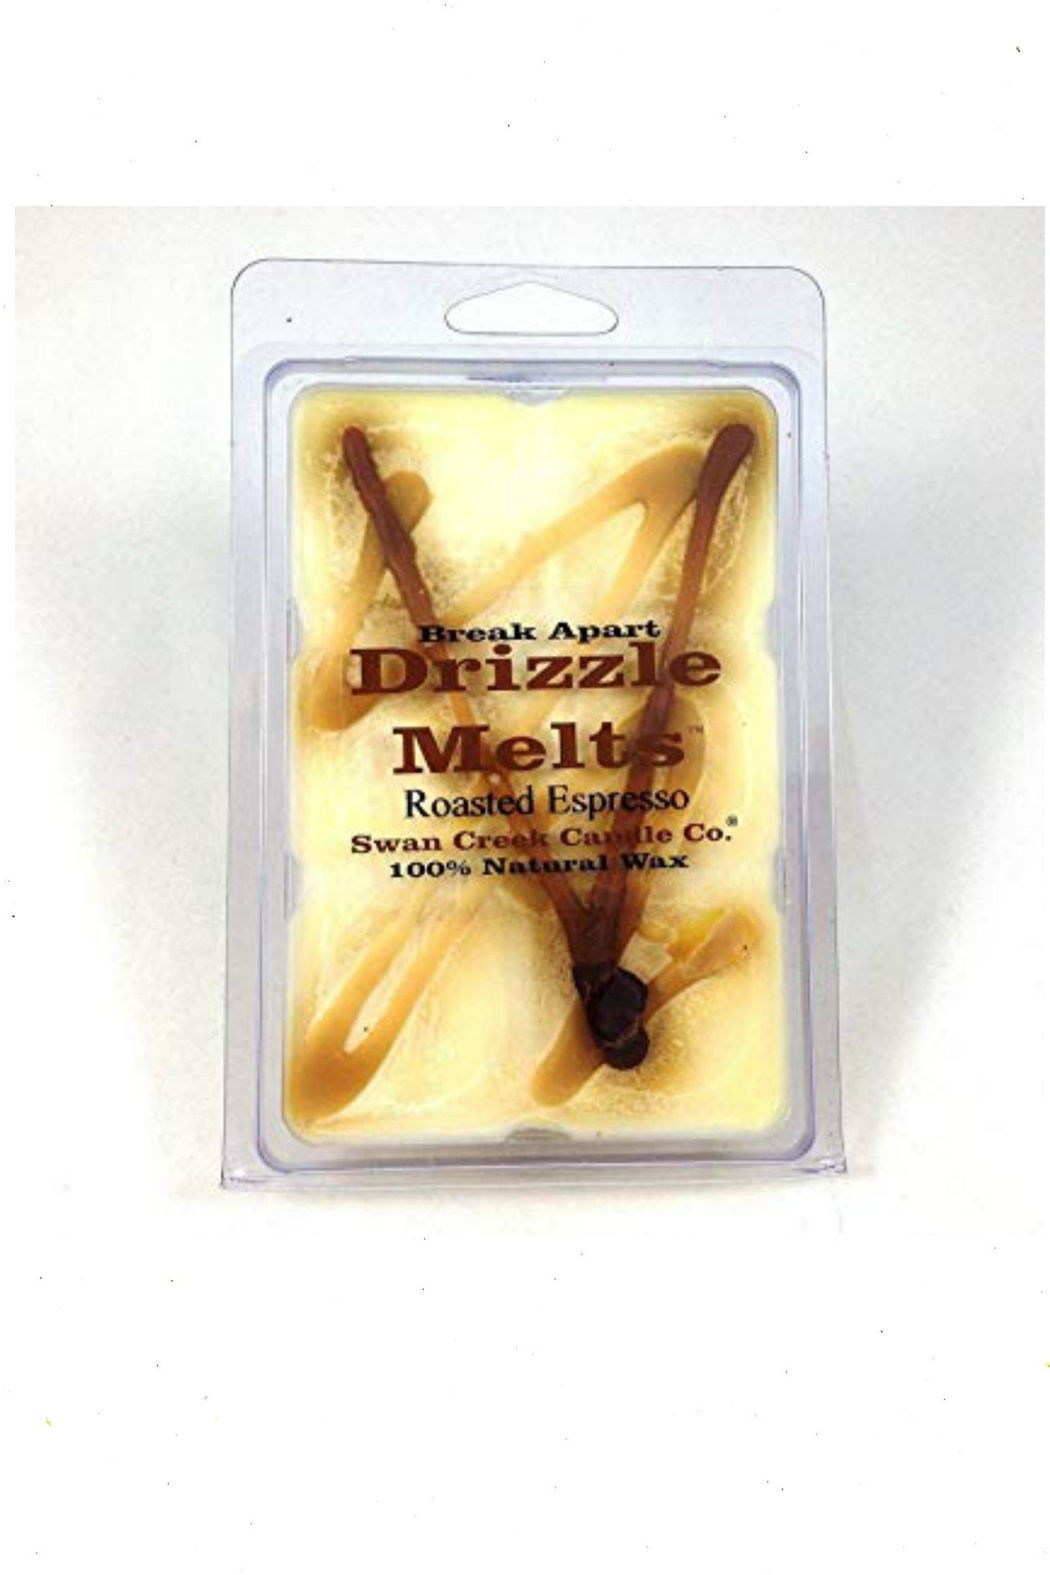 Swan Creek Candle Co. Roasted Espresso Melts - Main Image